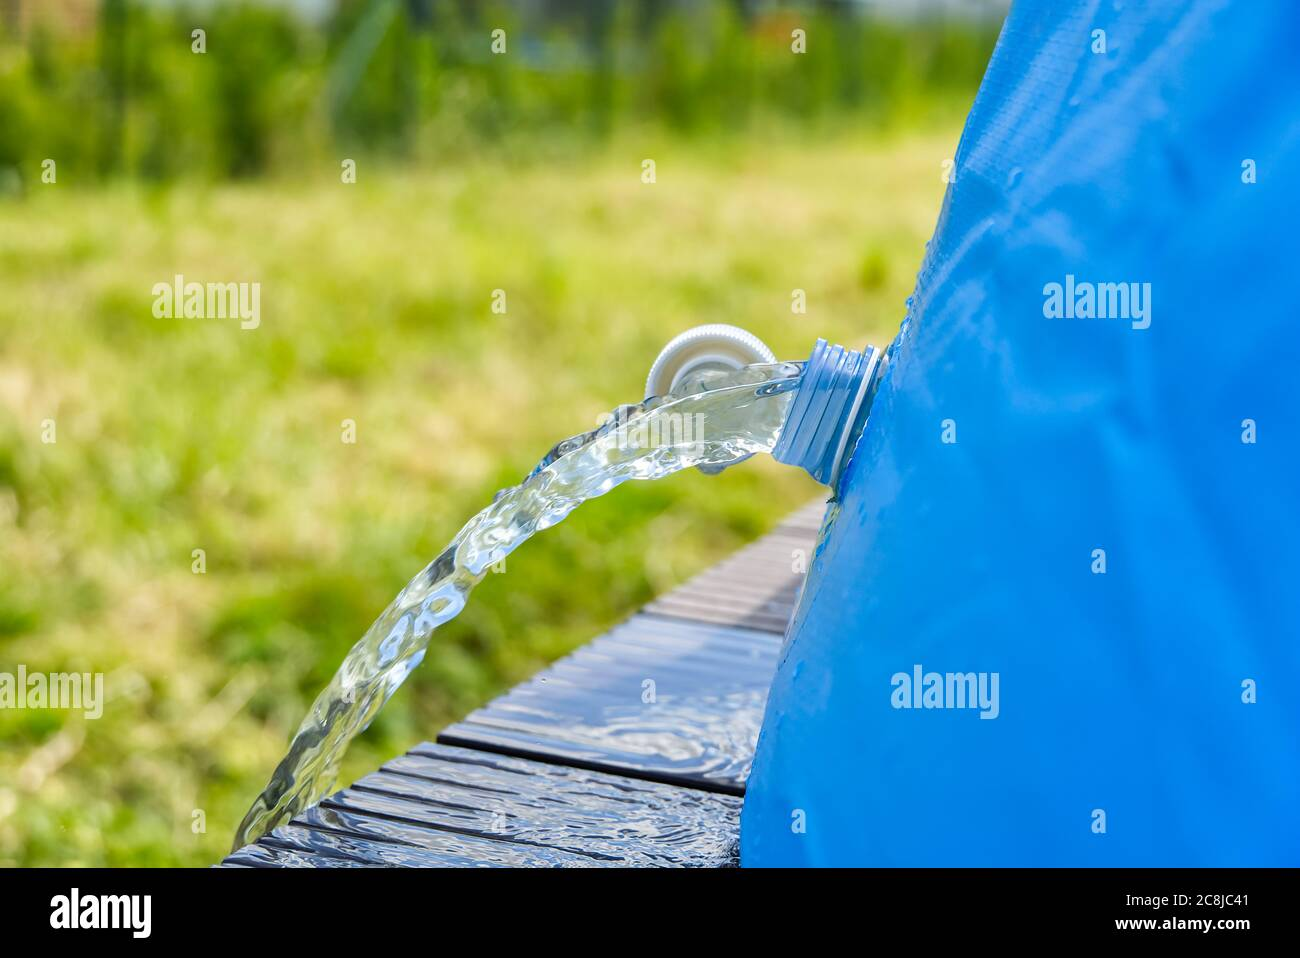 Drainage of water from an outdoor inflatable swimming pool. inflatable swimming pool care concept. Stock Photo